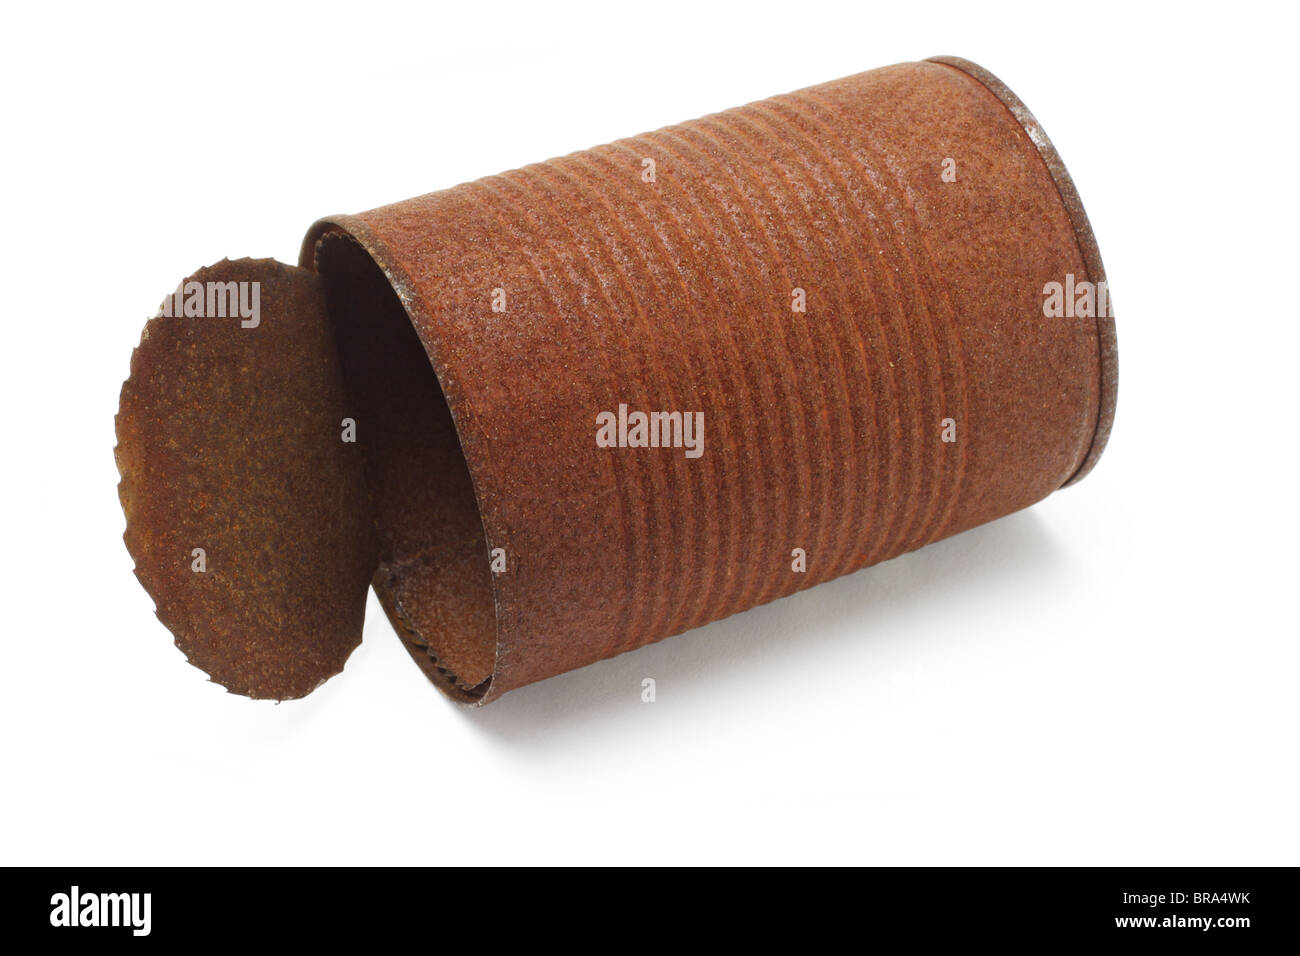 Old rusty tin can lying on white background - Stock Image